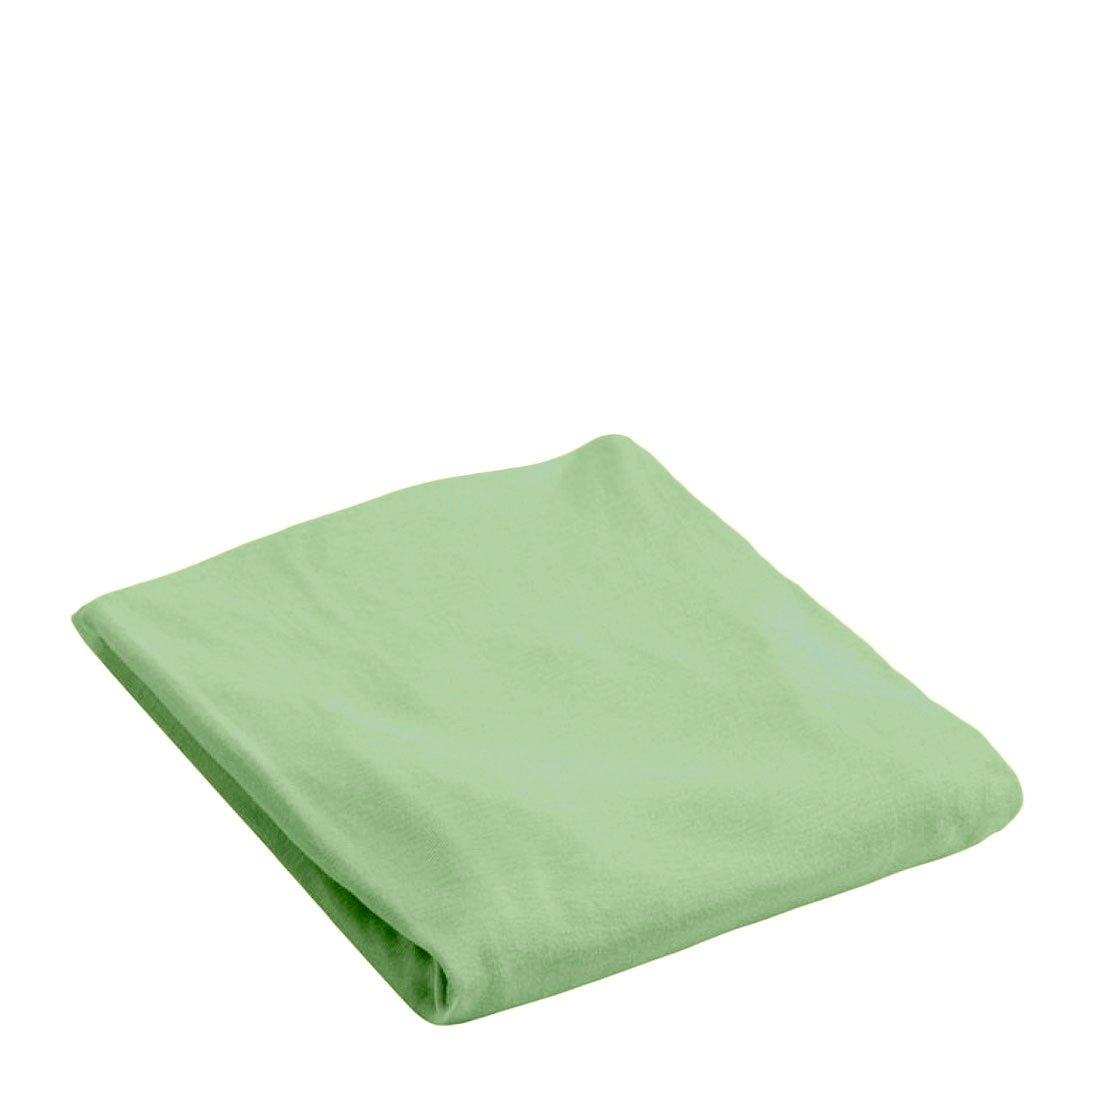 Mattress Cot Travel Cot Mattress Sheet